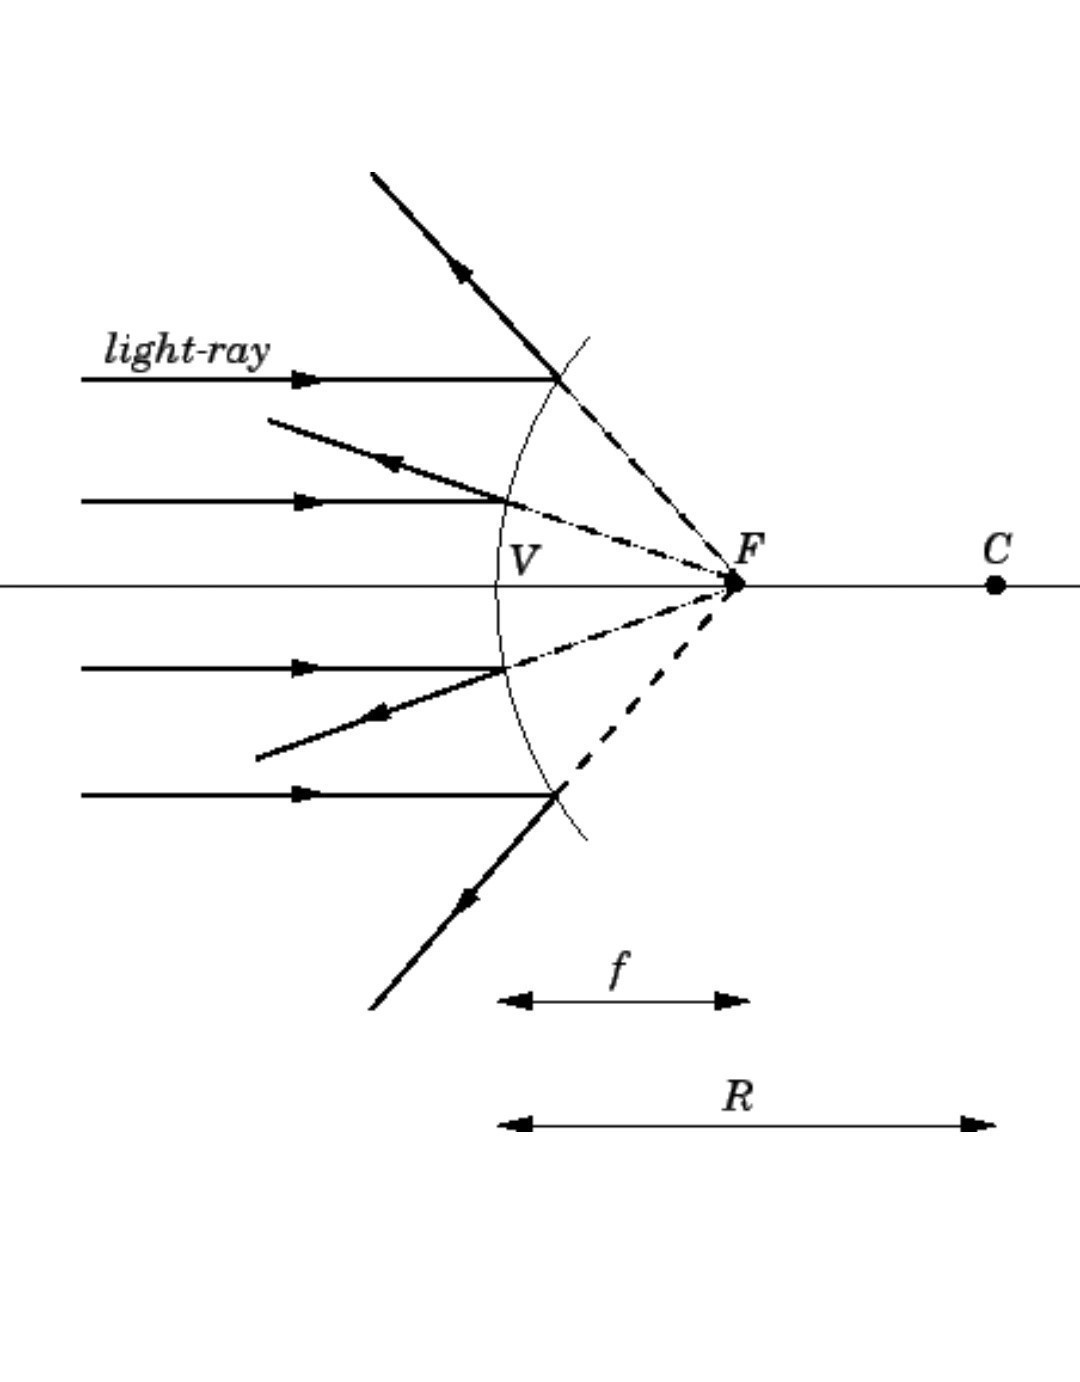 Draw A Ray Diagram To Show The Formation Of The Image Of A